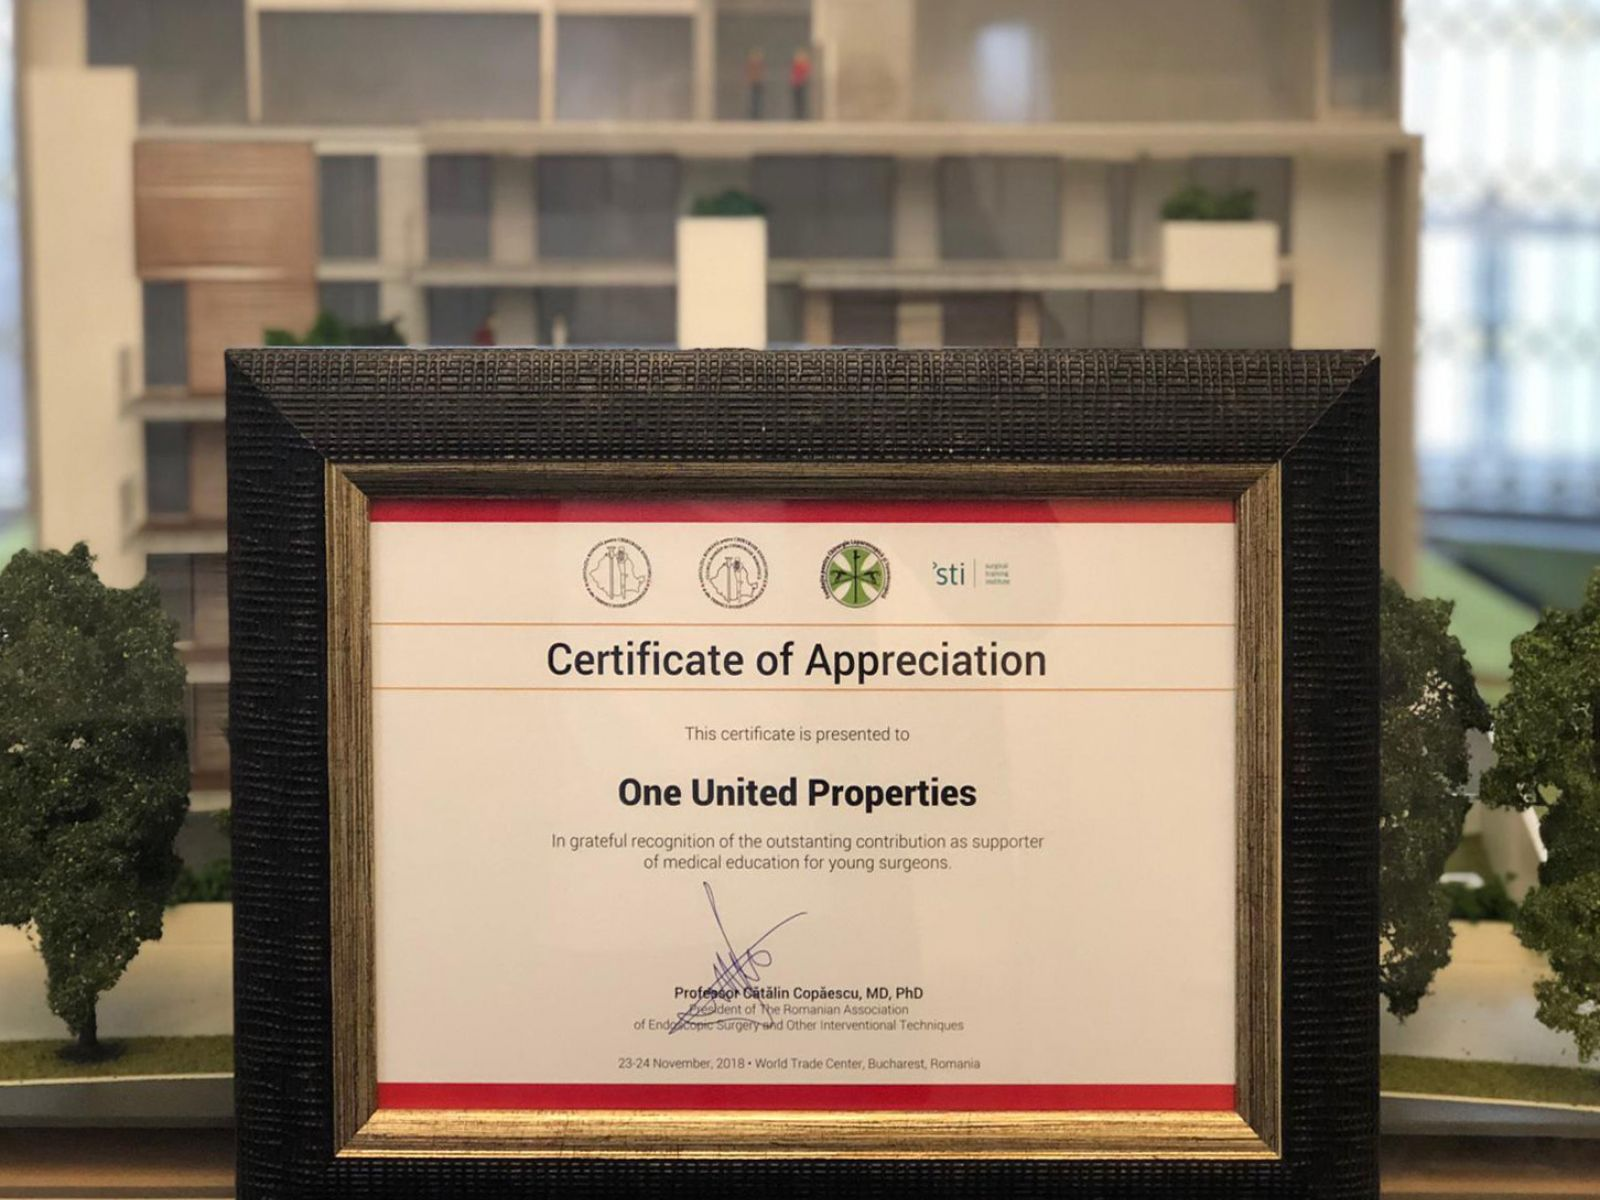 One United Properties to receive the ARCE Certificate of Appreciation